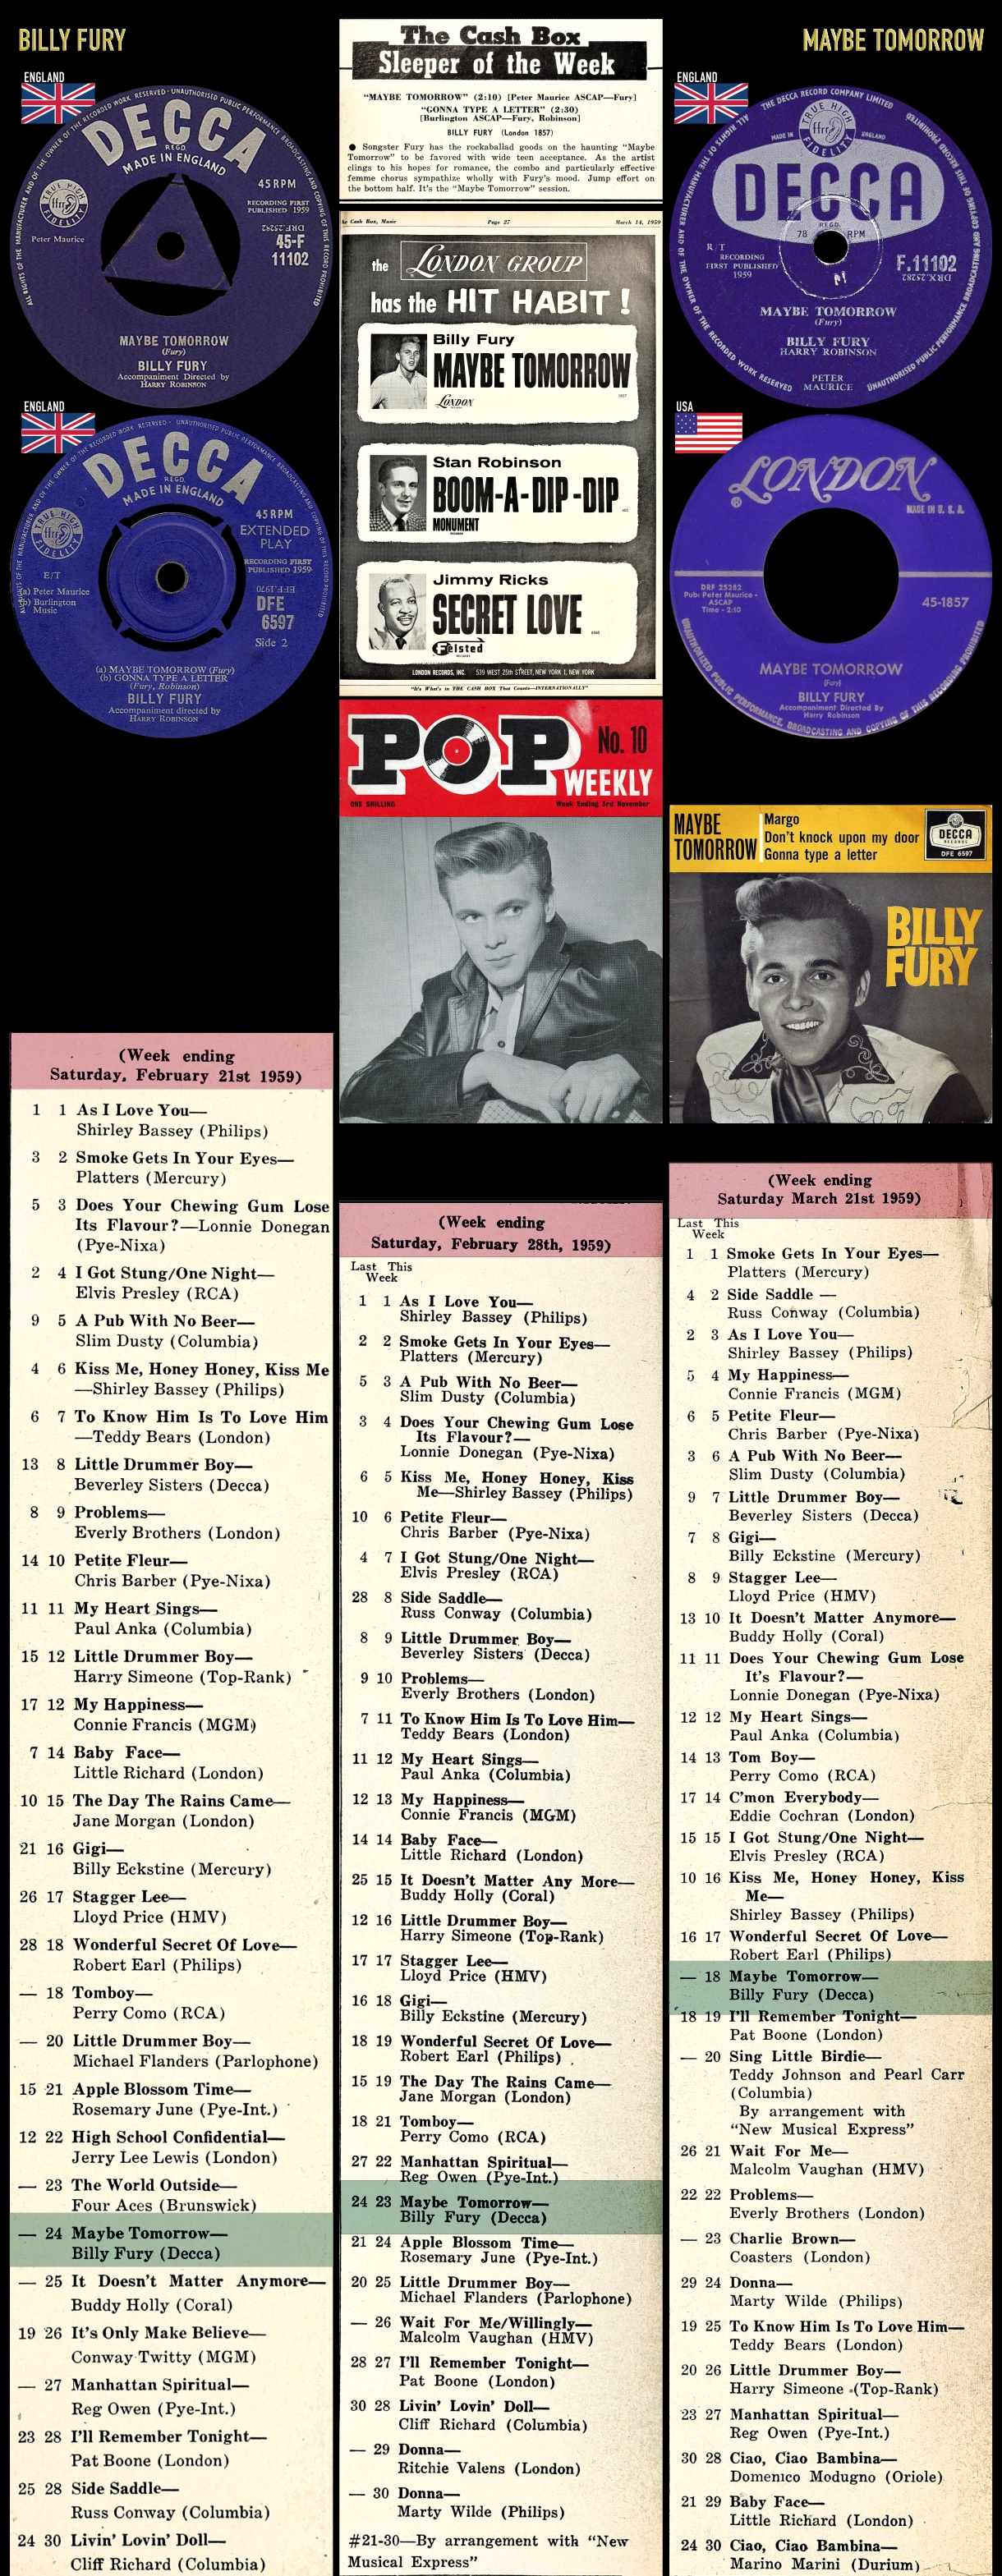 590228_Billy Fury_Maybe Tomorrow_new